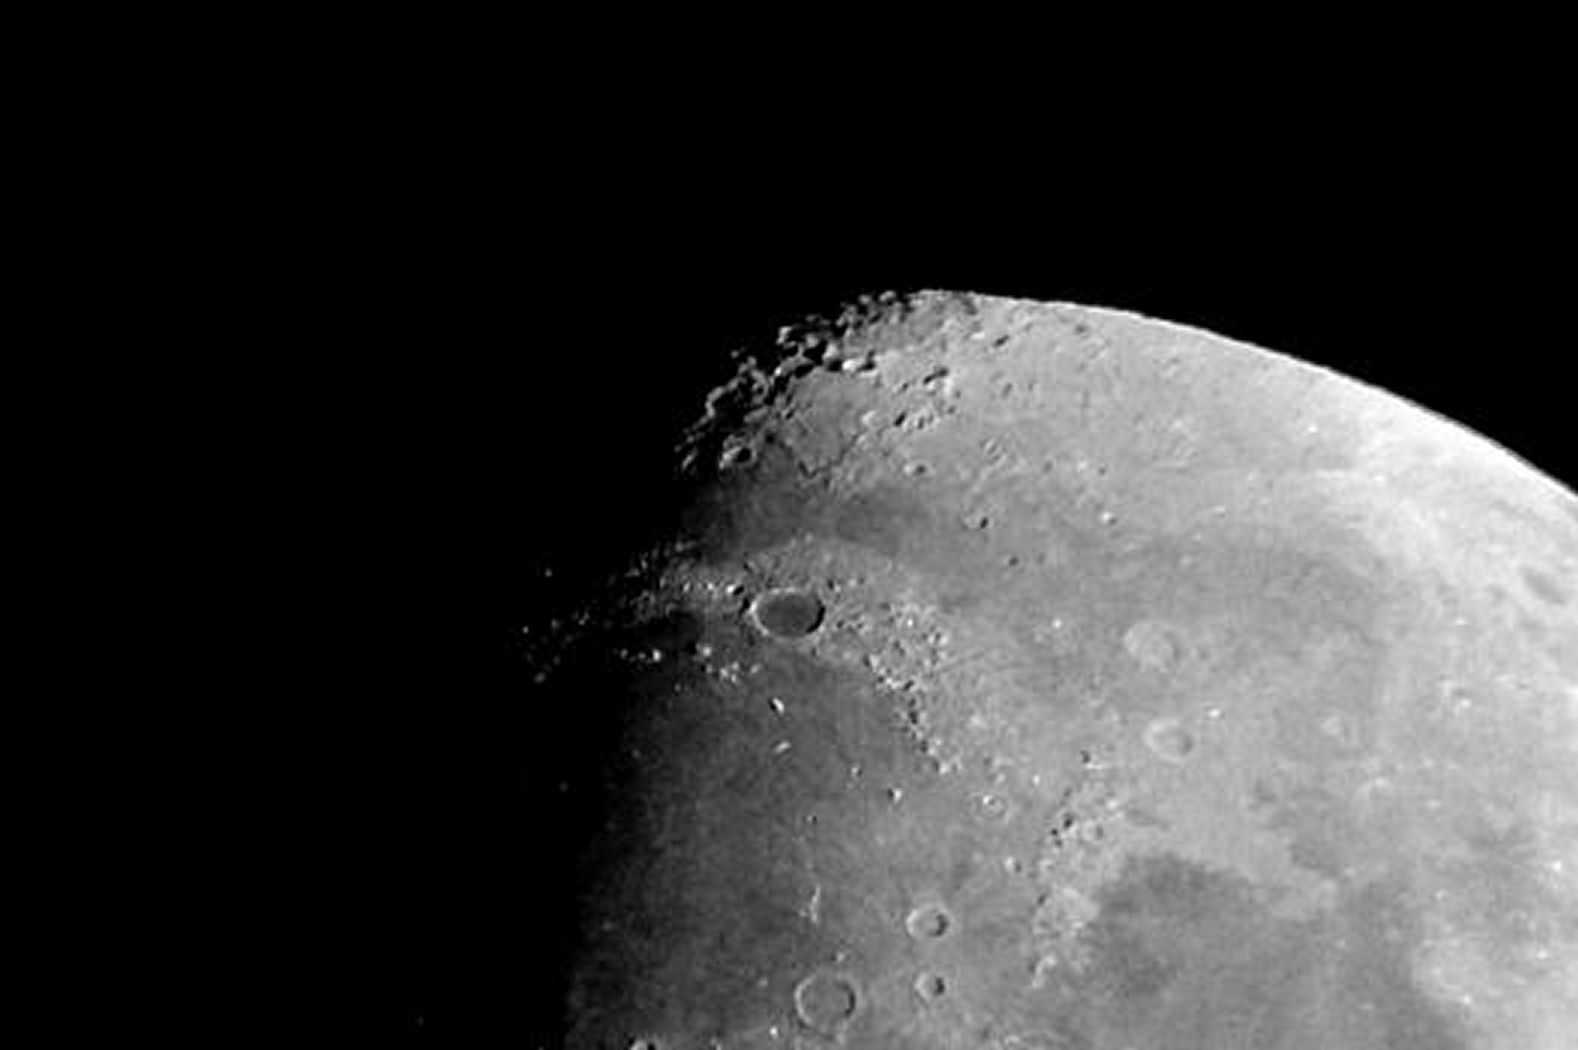 "The Moon by Bill Samson 20th Dec. 2015. ""I took this picture this evening, just after 6pm.  it was taken using a compact Canon Ixus 117 camera at the eyepiece (25mm) of a Skywatcher Skymax 102 Maksutov Cassegrain on a simple undriven mount. """